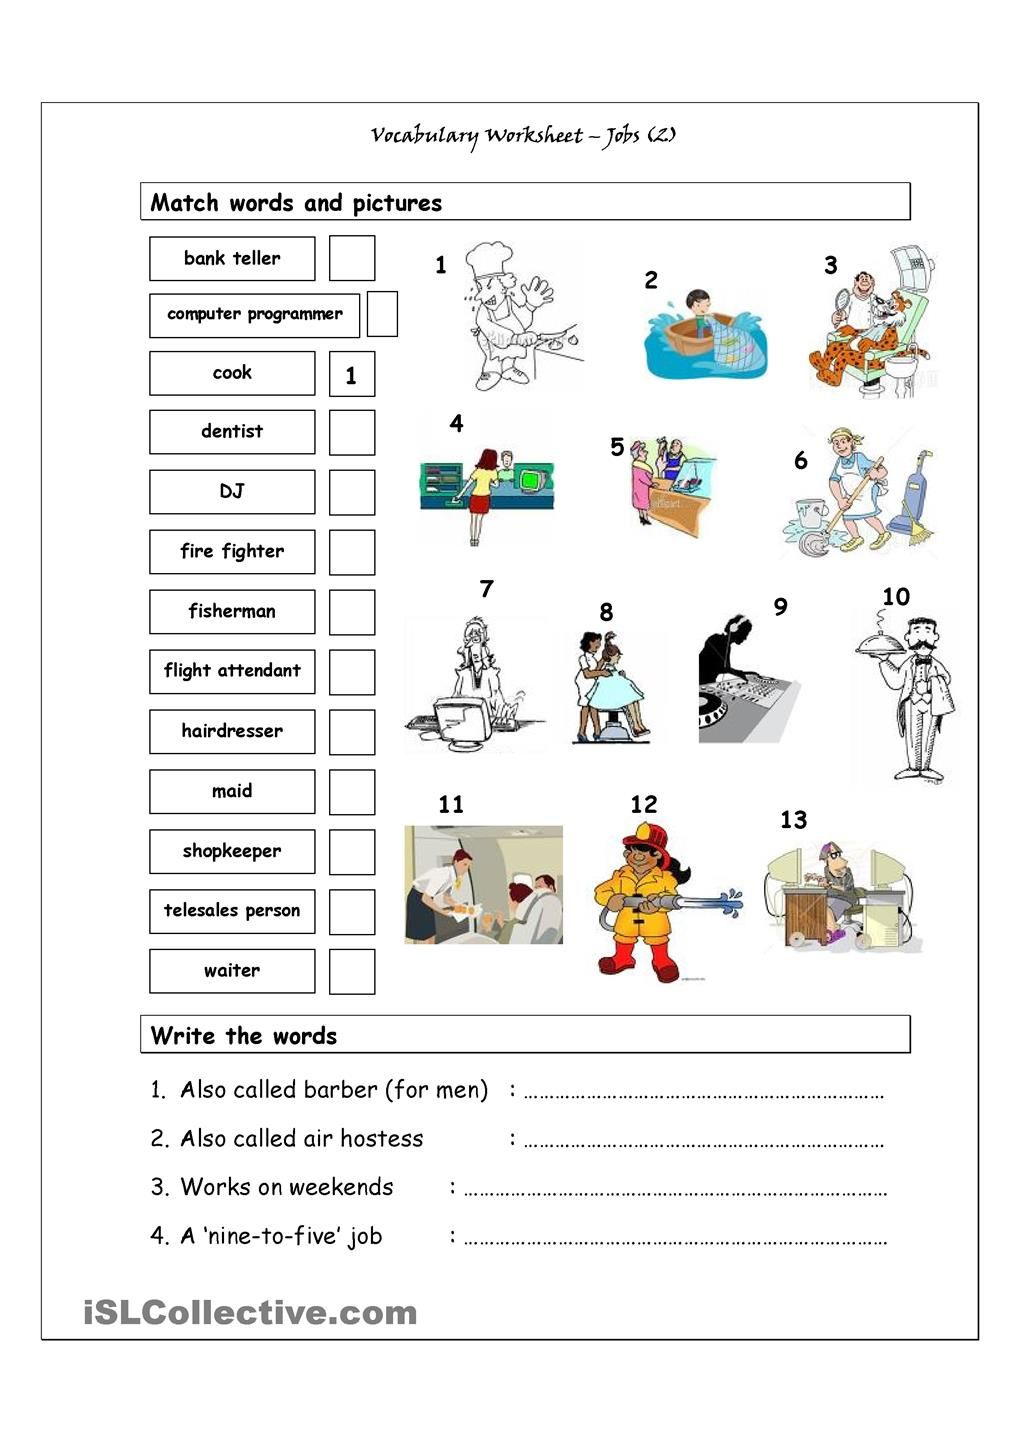 Worksheet Vocabulary Enrichment Worksheets entertainment vocabulary exercises esl worksheets of the day worksheet focusing on jobs more difficult it has two sections match words and pictures matching exercise write